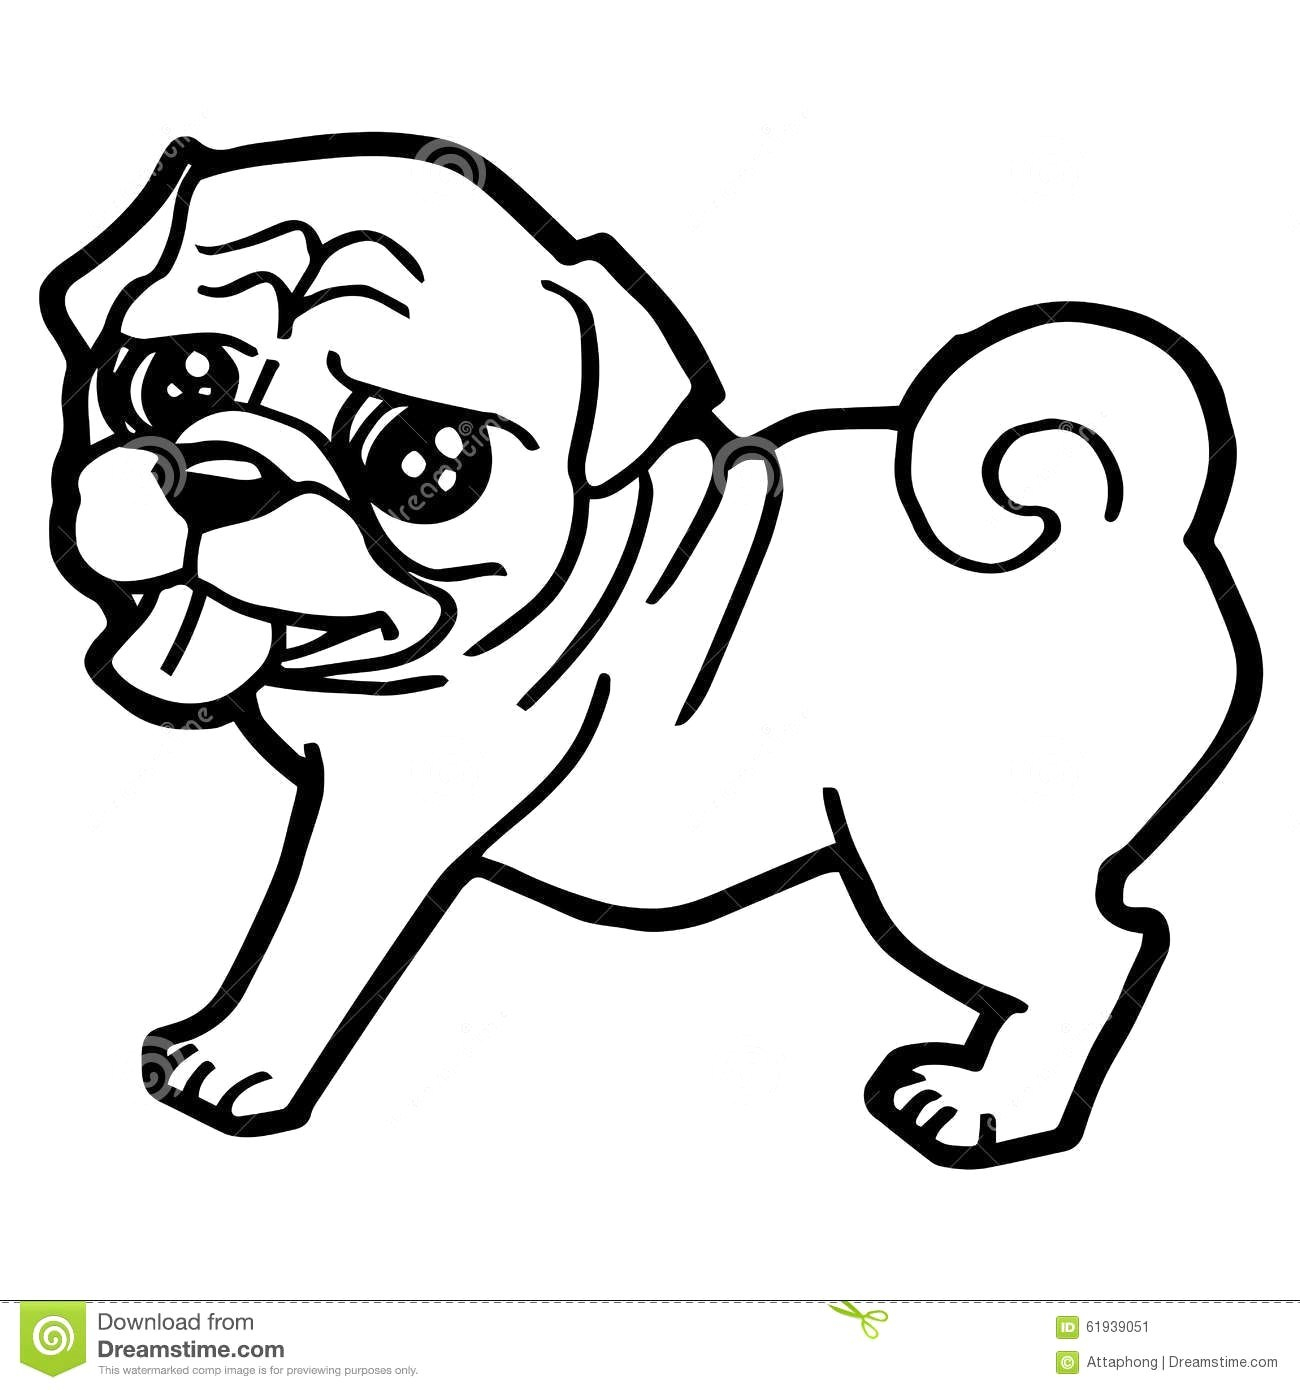 Pug Puppy Coloring Pages Cute Pug Coloring Pages Printable Coloring Page For Kids